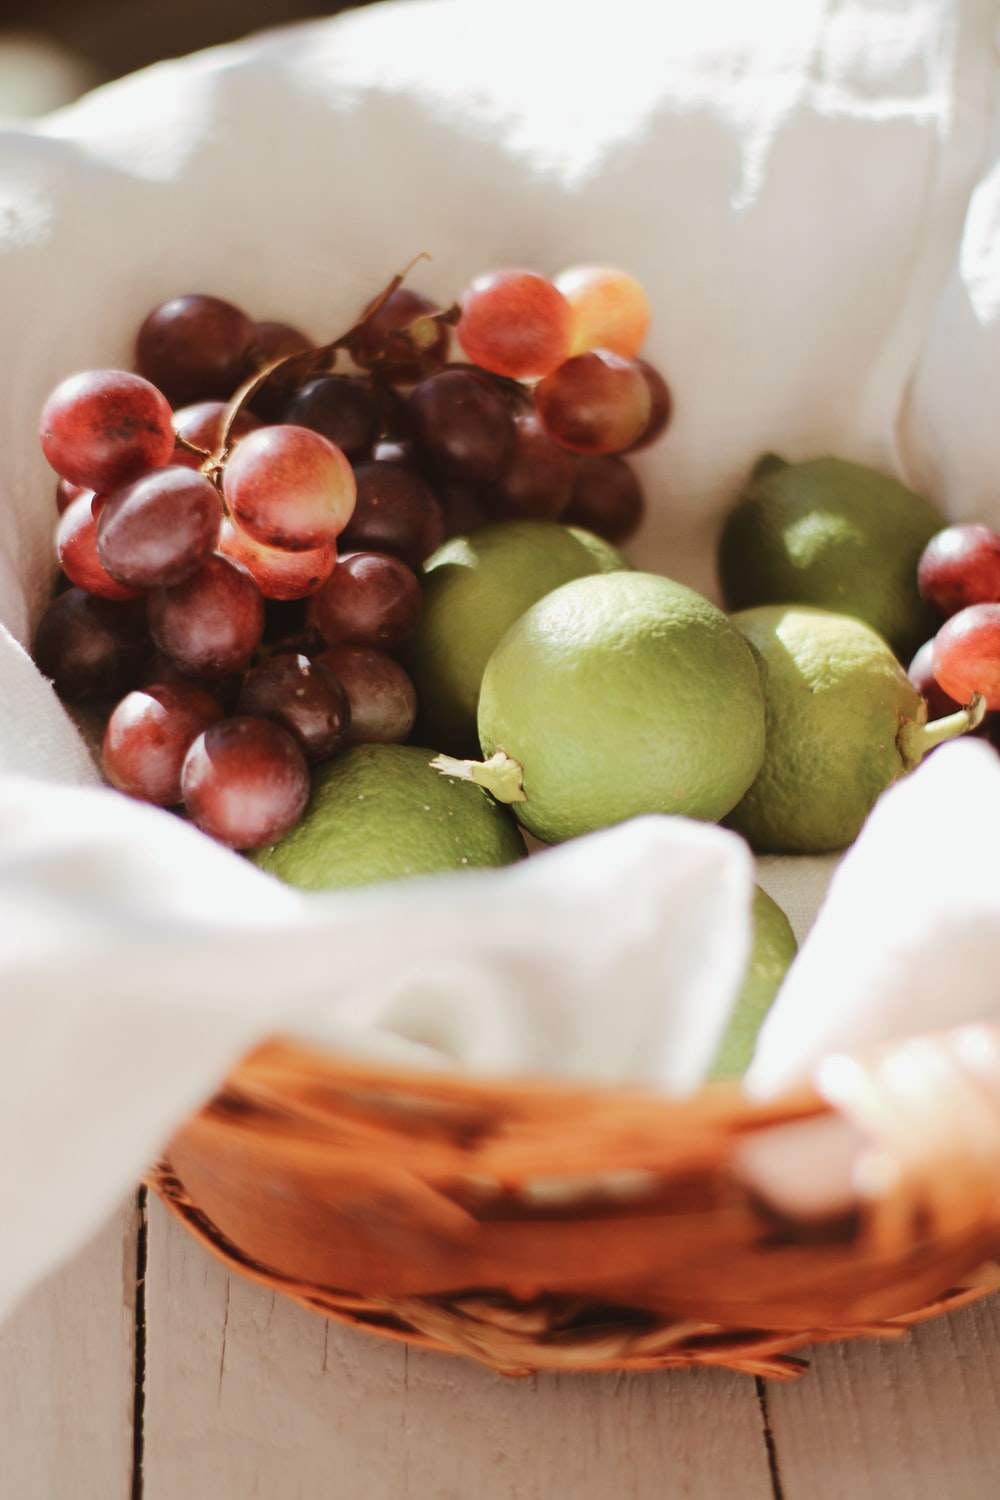 green and brown round fruits on white plastic bag